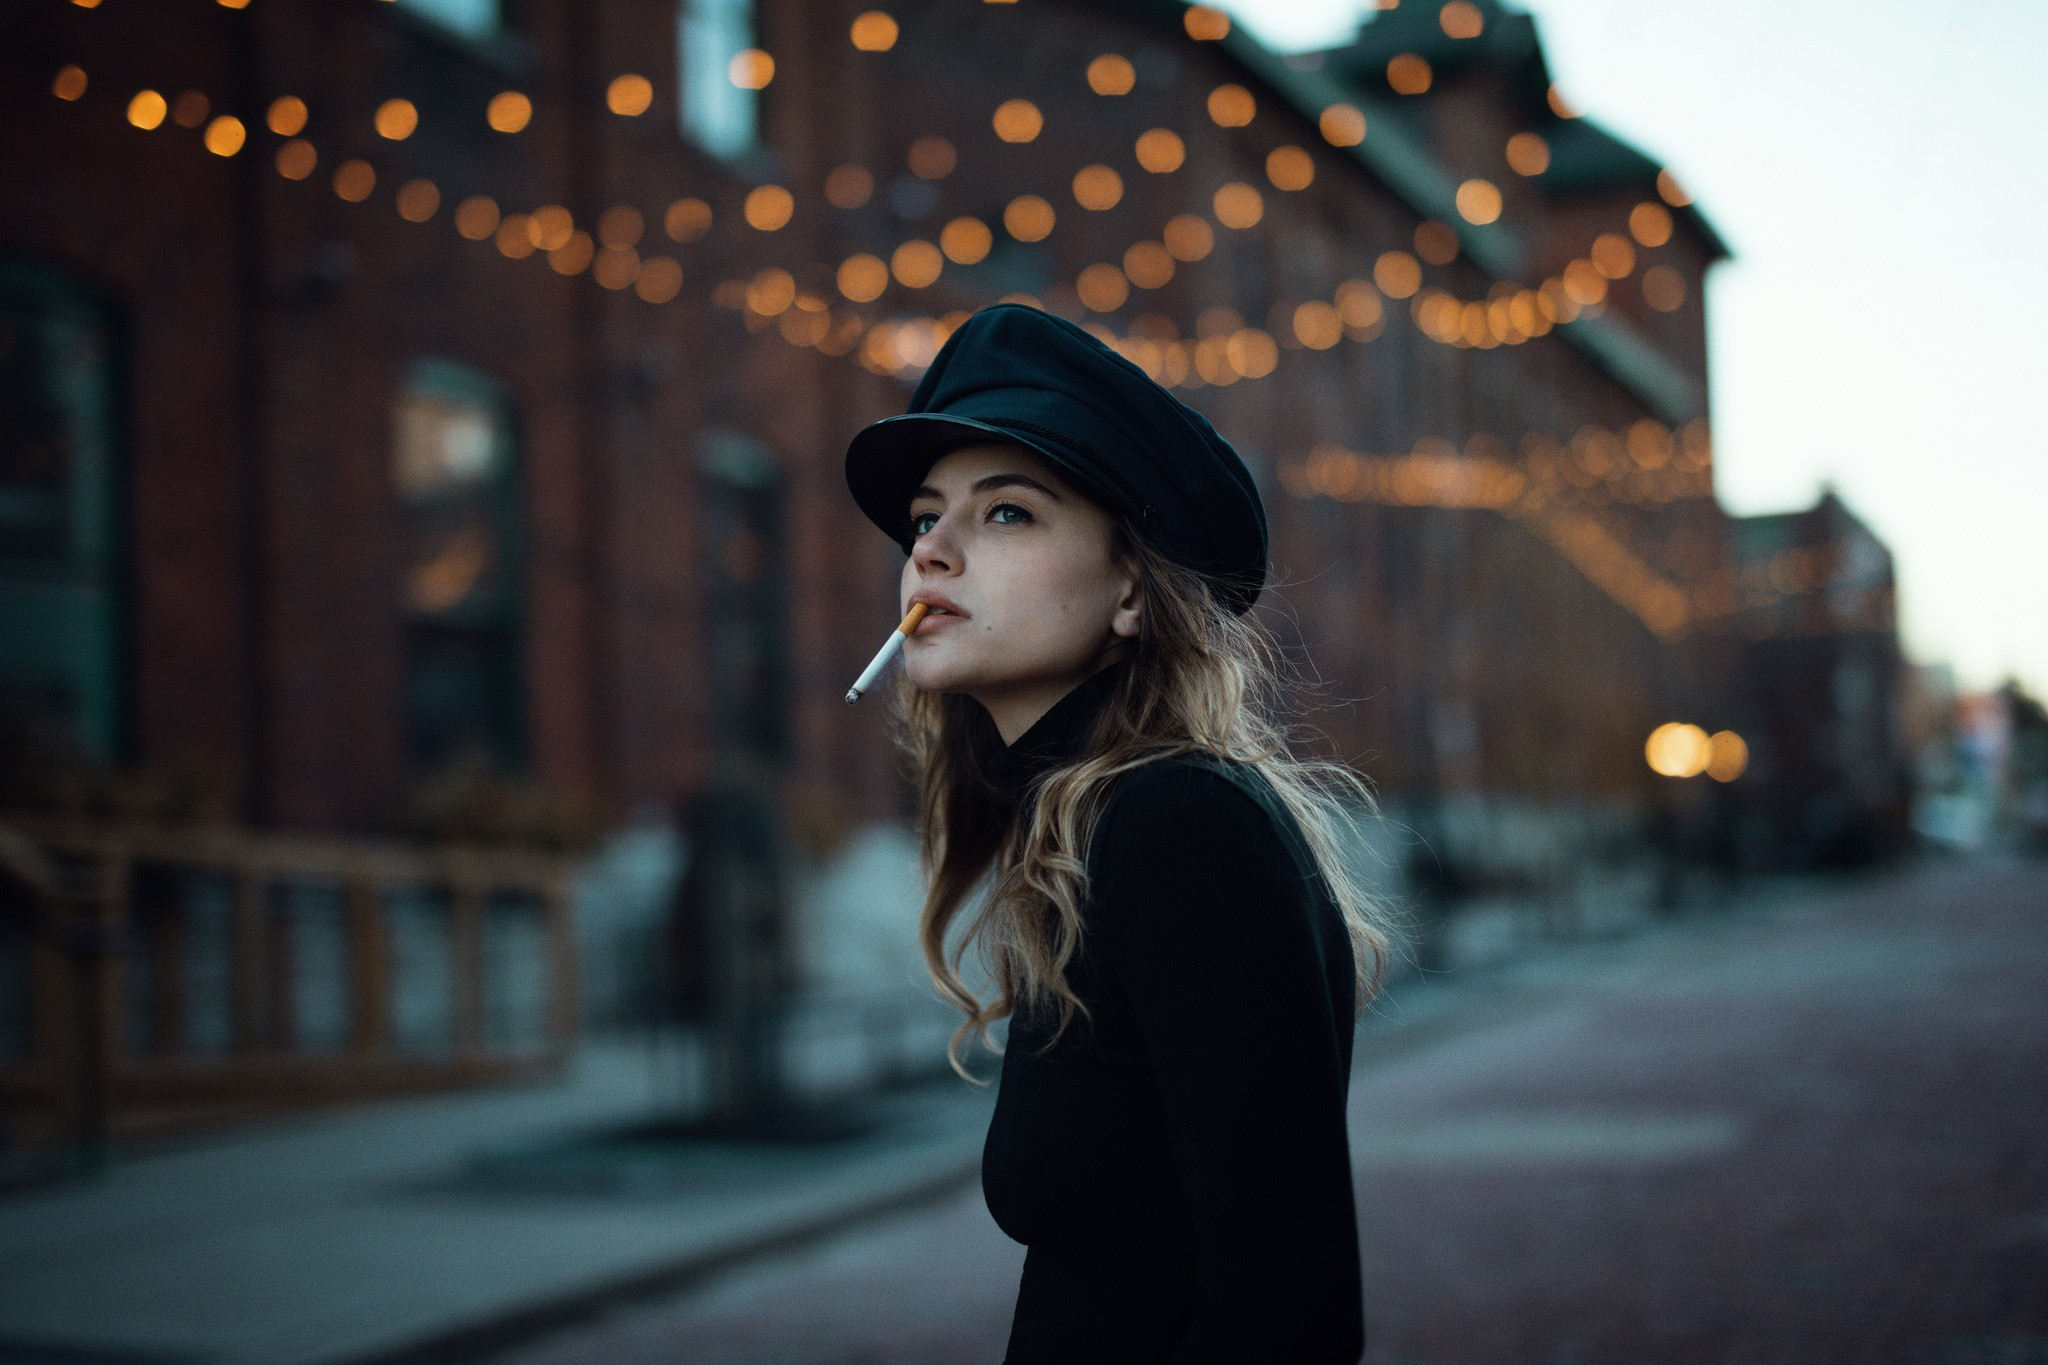 Beautiful Girl With Hat Wallpaper Wallpaper Women Outdoors Model Street Looking Away